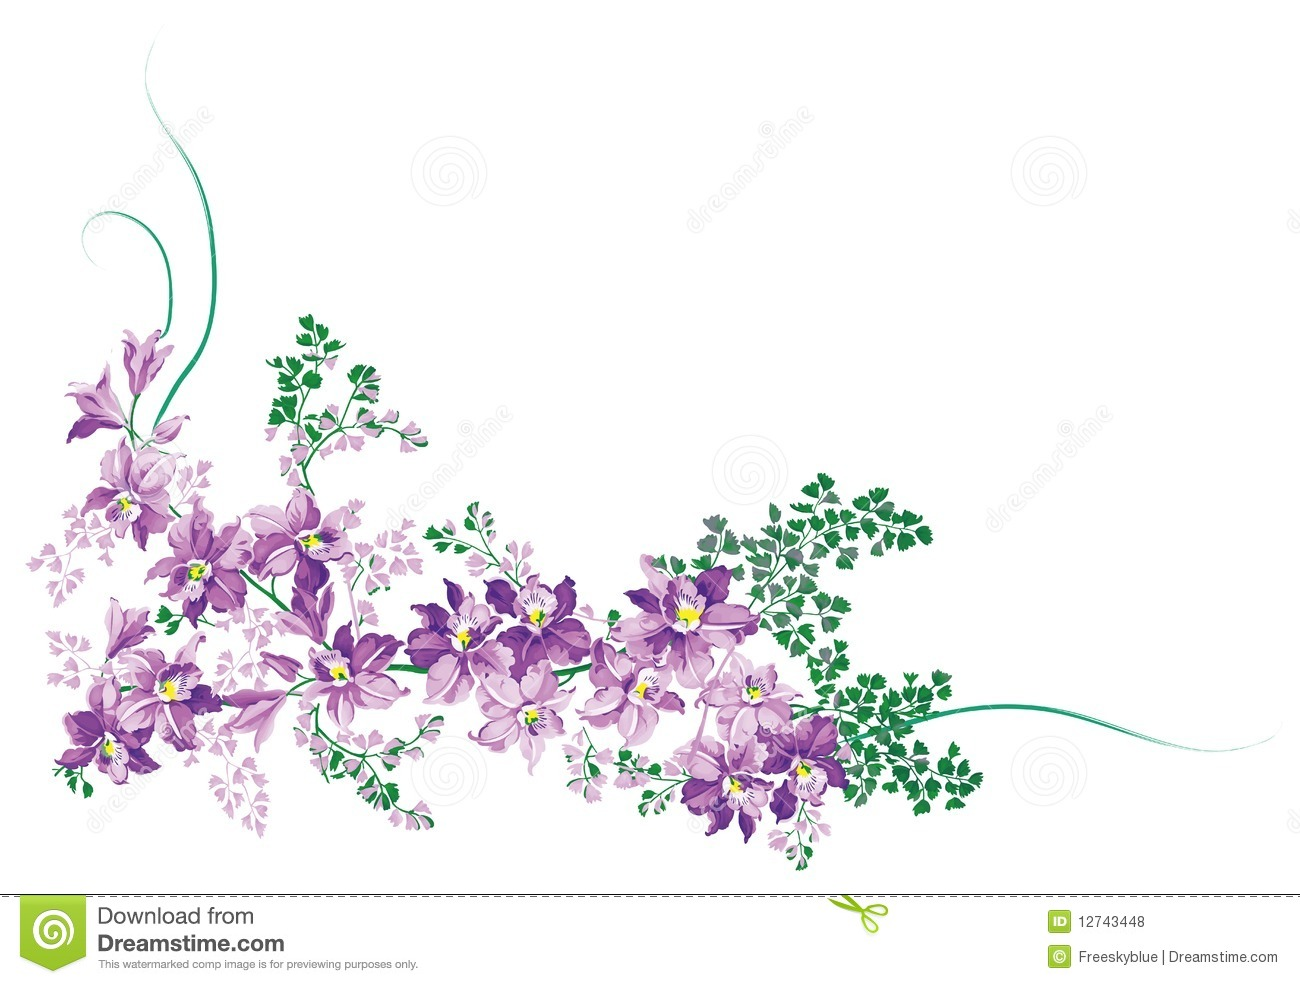 This is a picture of Mesmerizing Purple Flowers Drawing